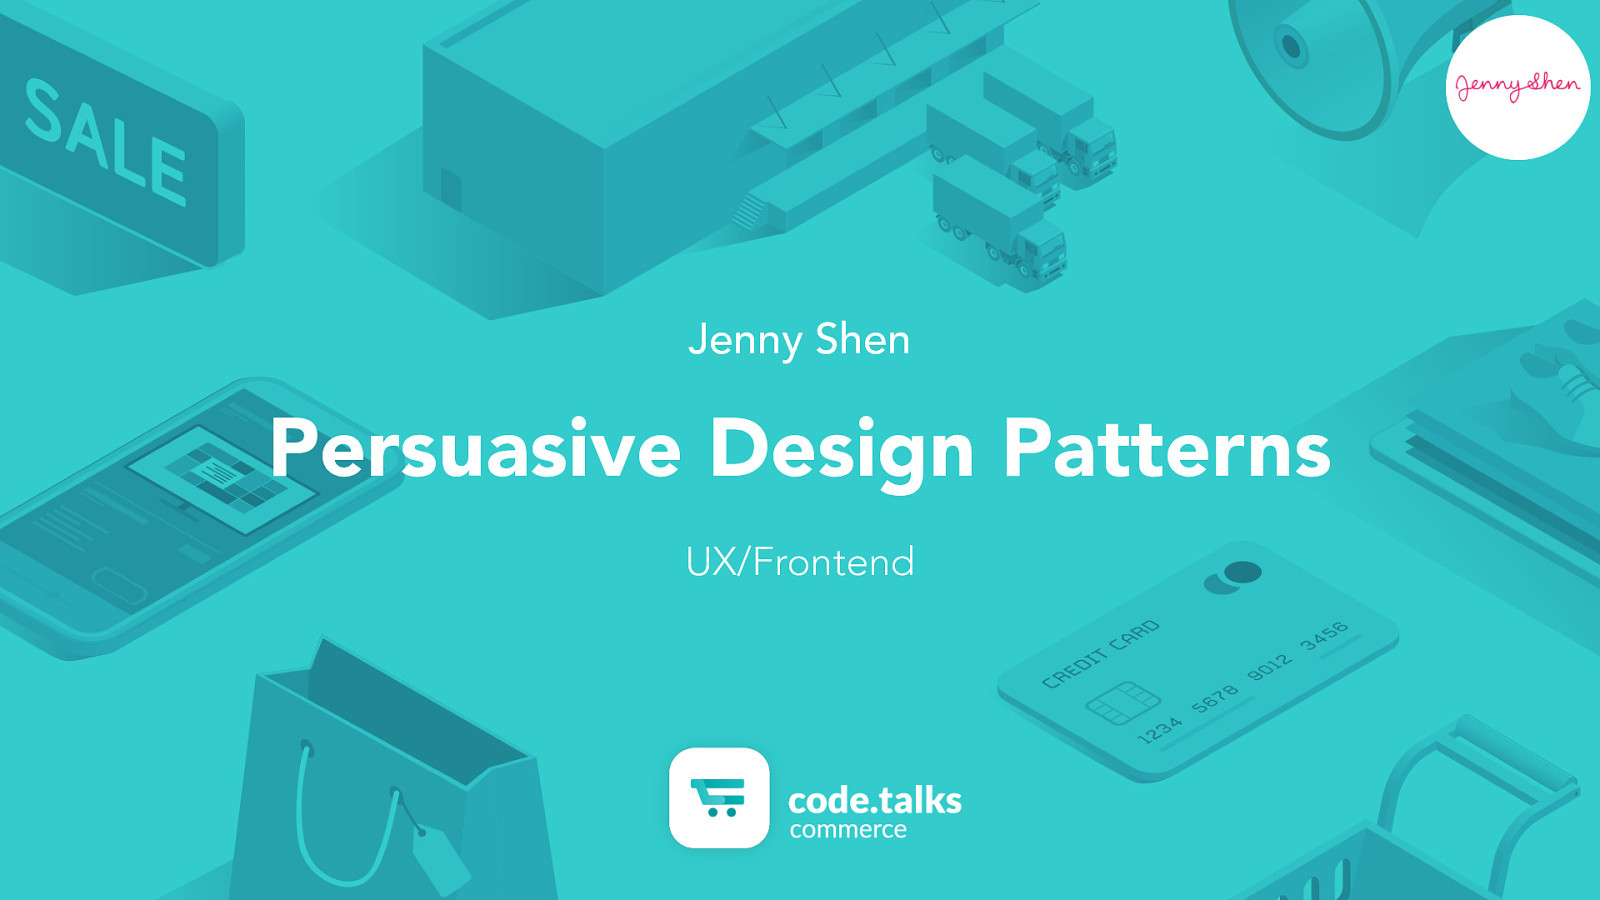 Persuasive Design Patterns—Design experiences that enhance and align with motivations